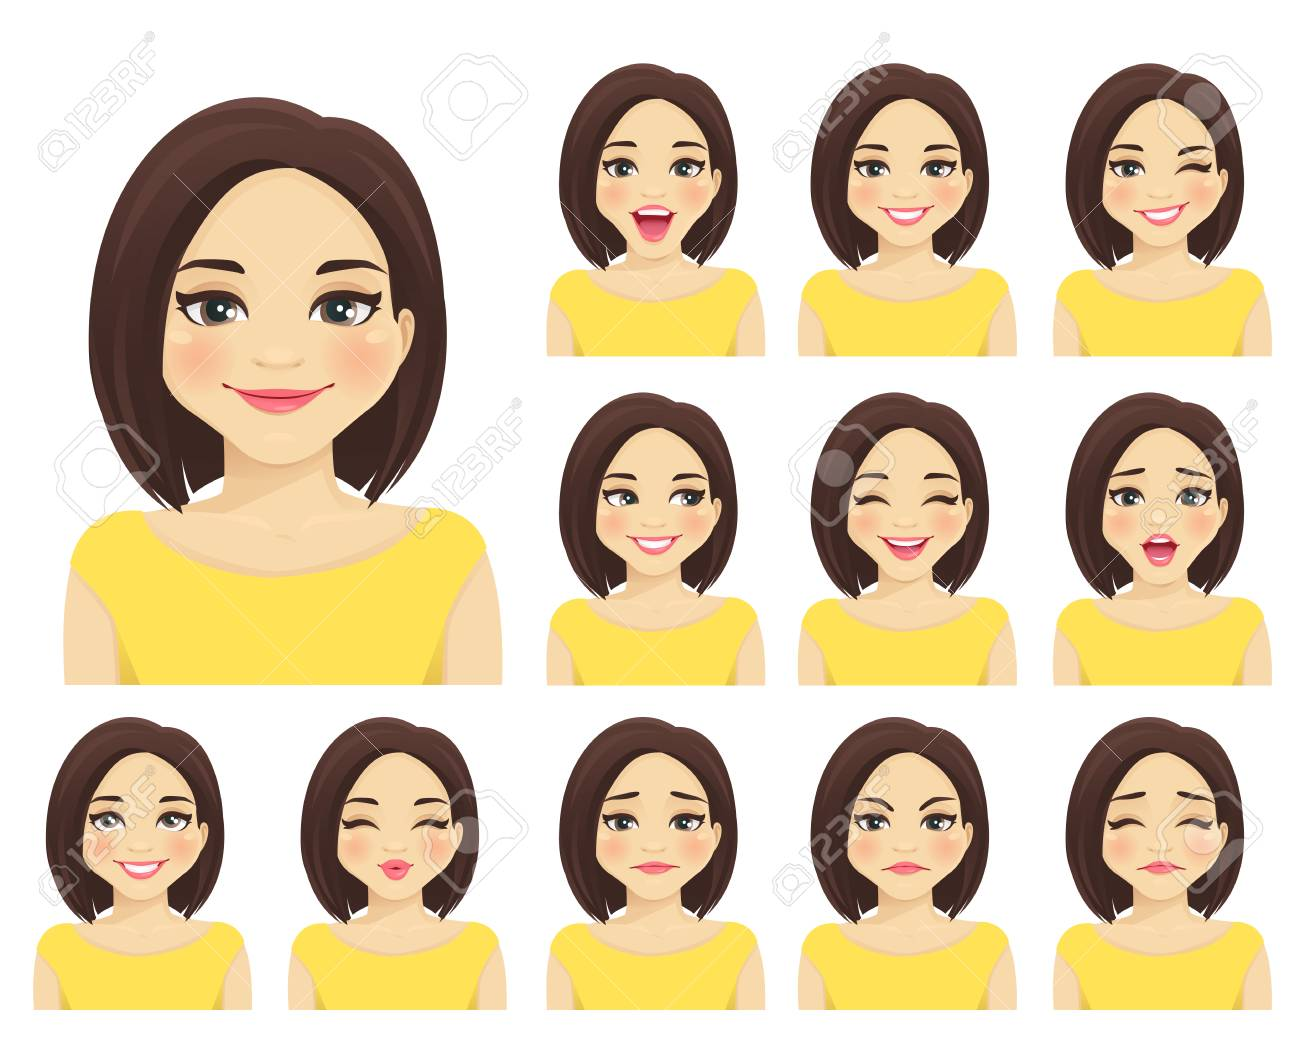 Woman with different facial expressions set isolated - 106281583